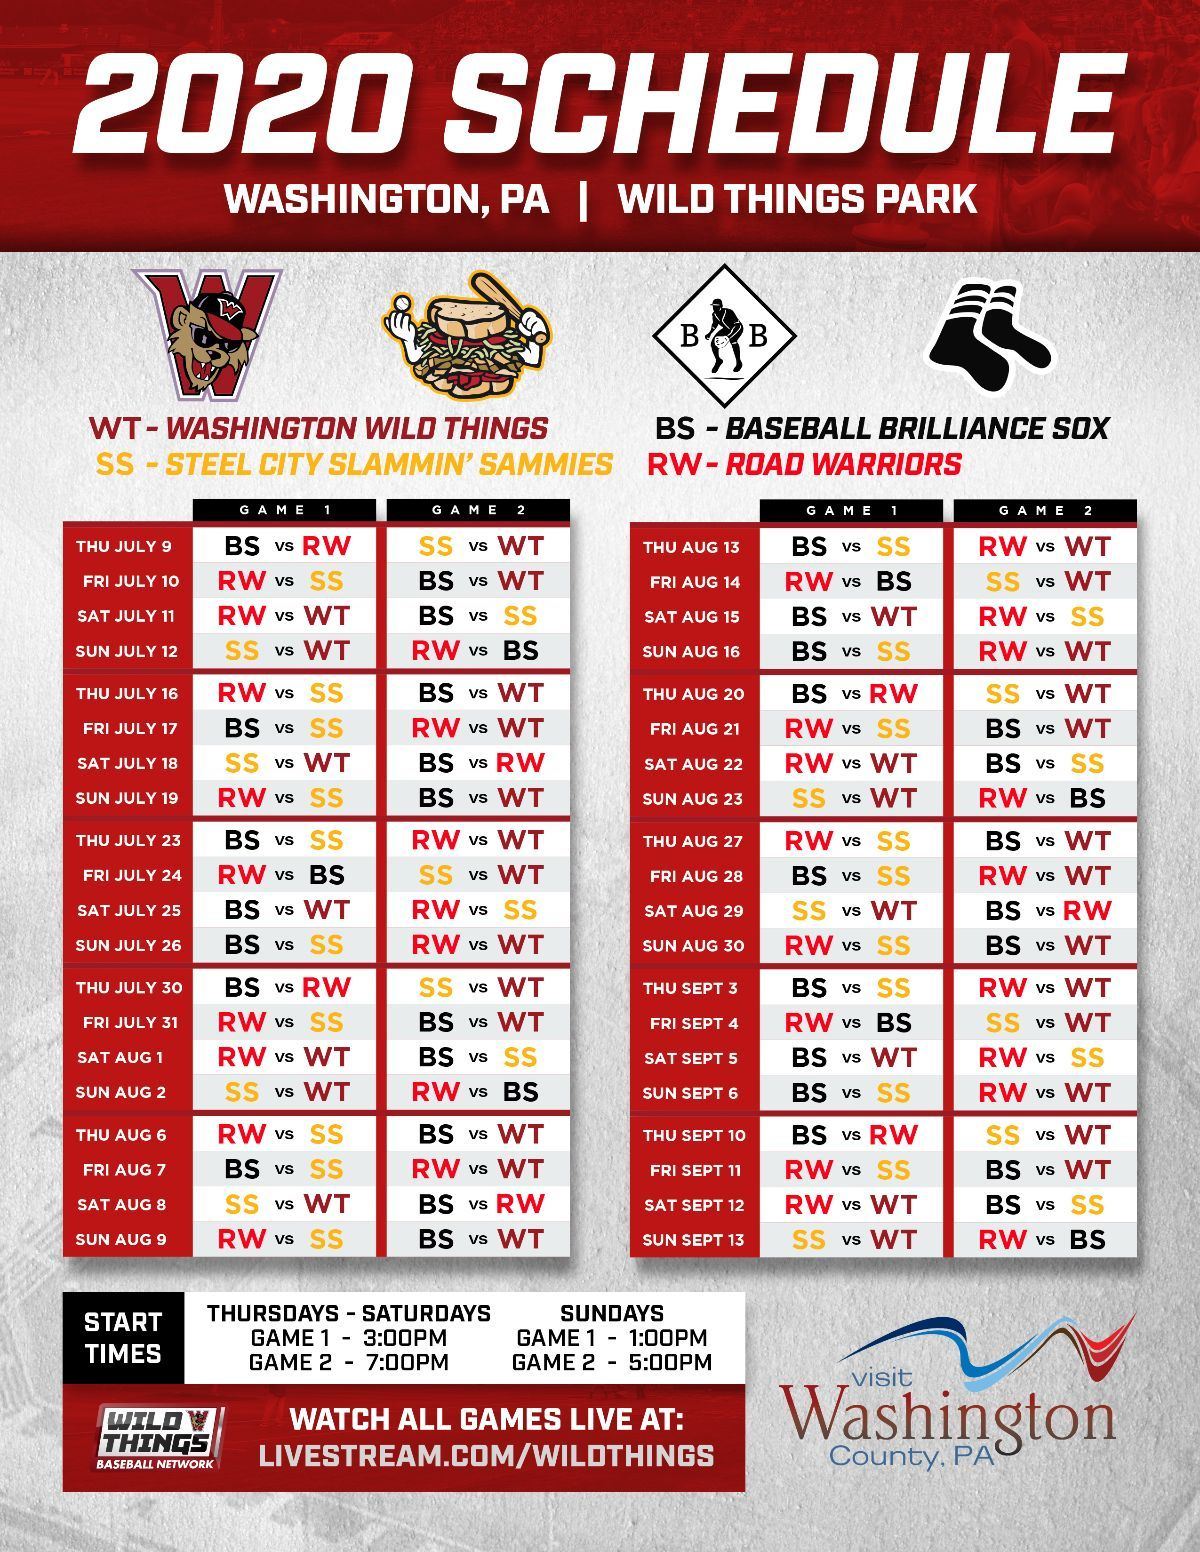 2020 Schedule Printable Official Website Of The Washington Wild Things